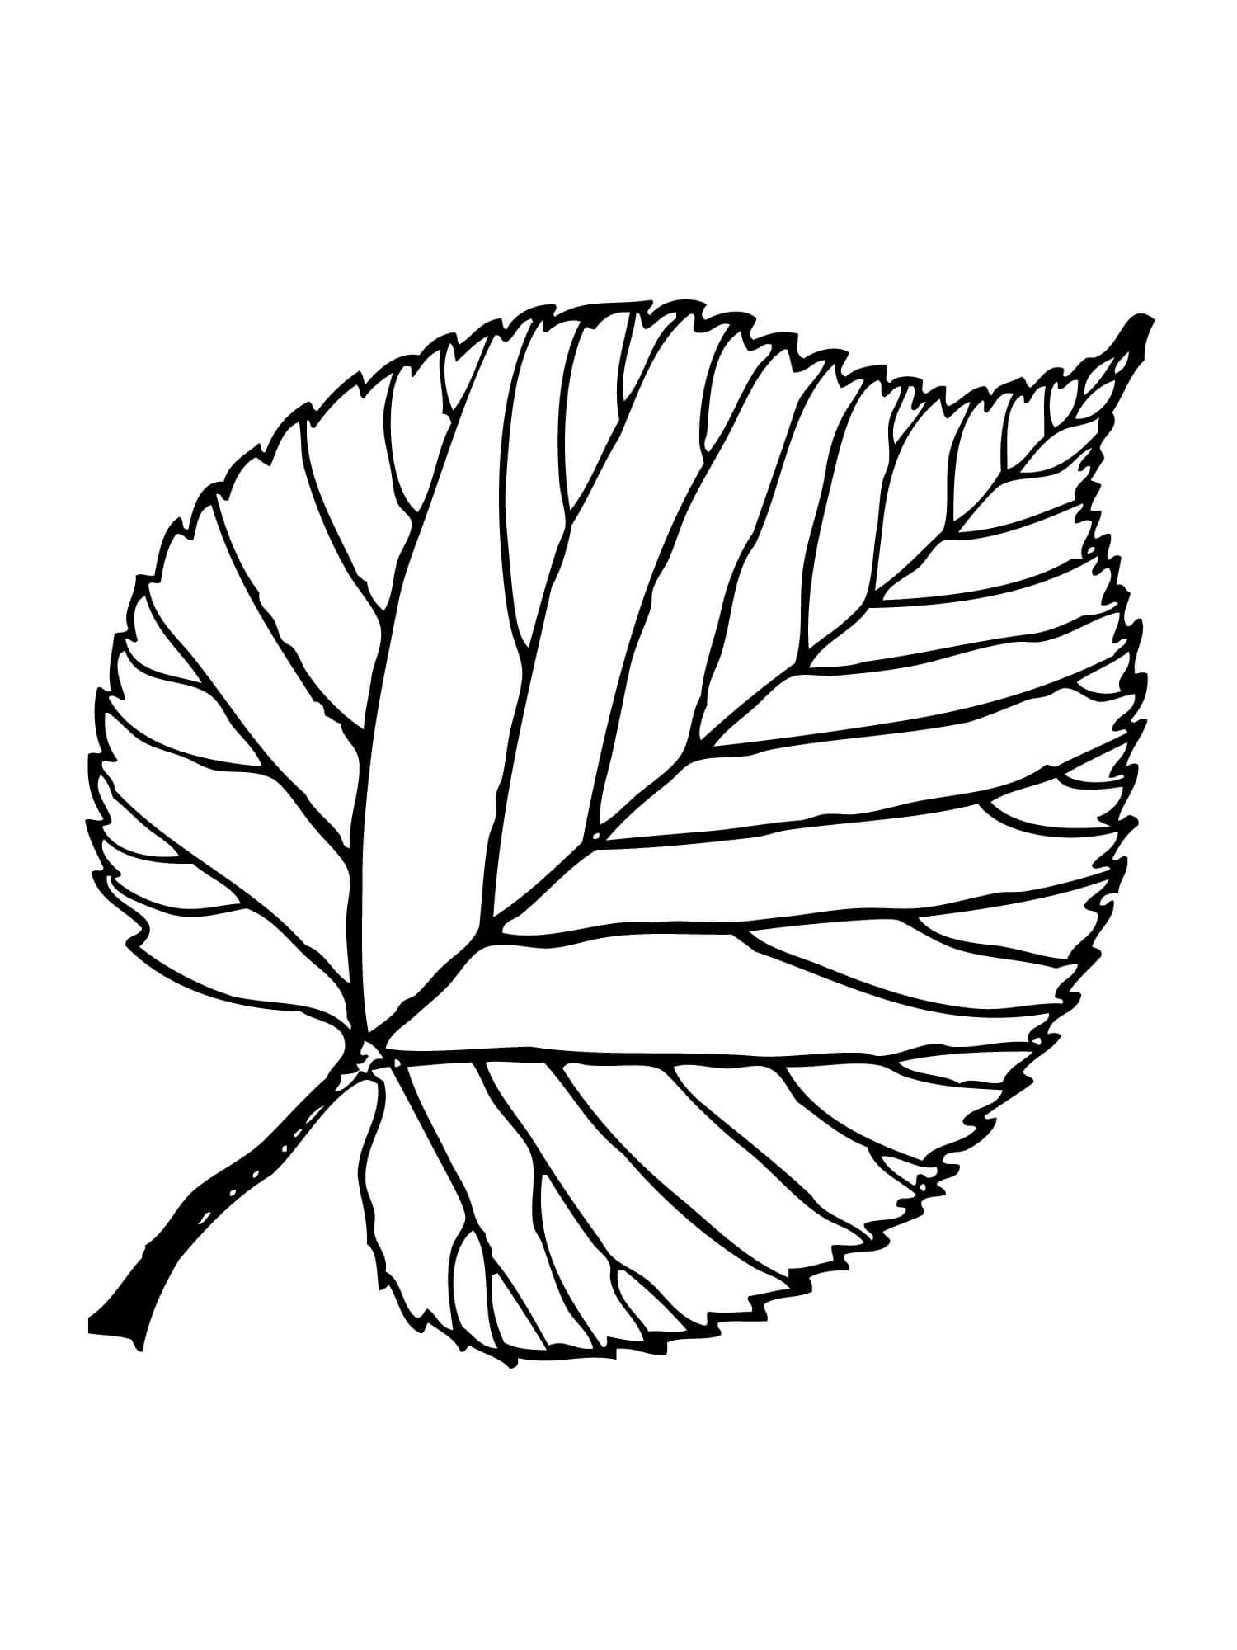 leaf coloring pages leaf coloring pages to print pages coloring leaf